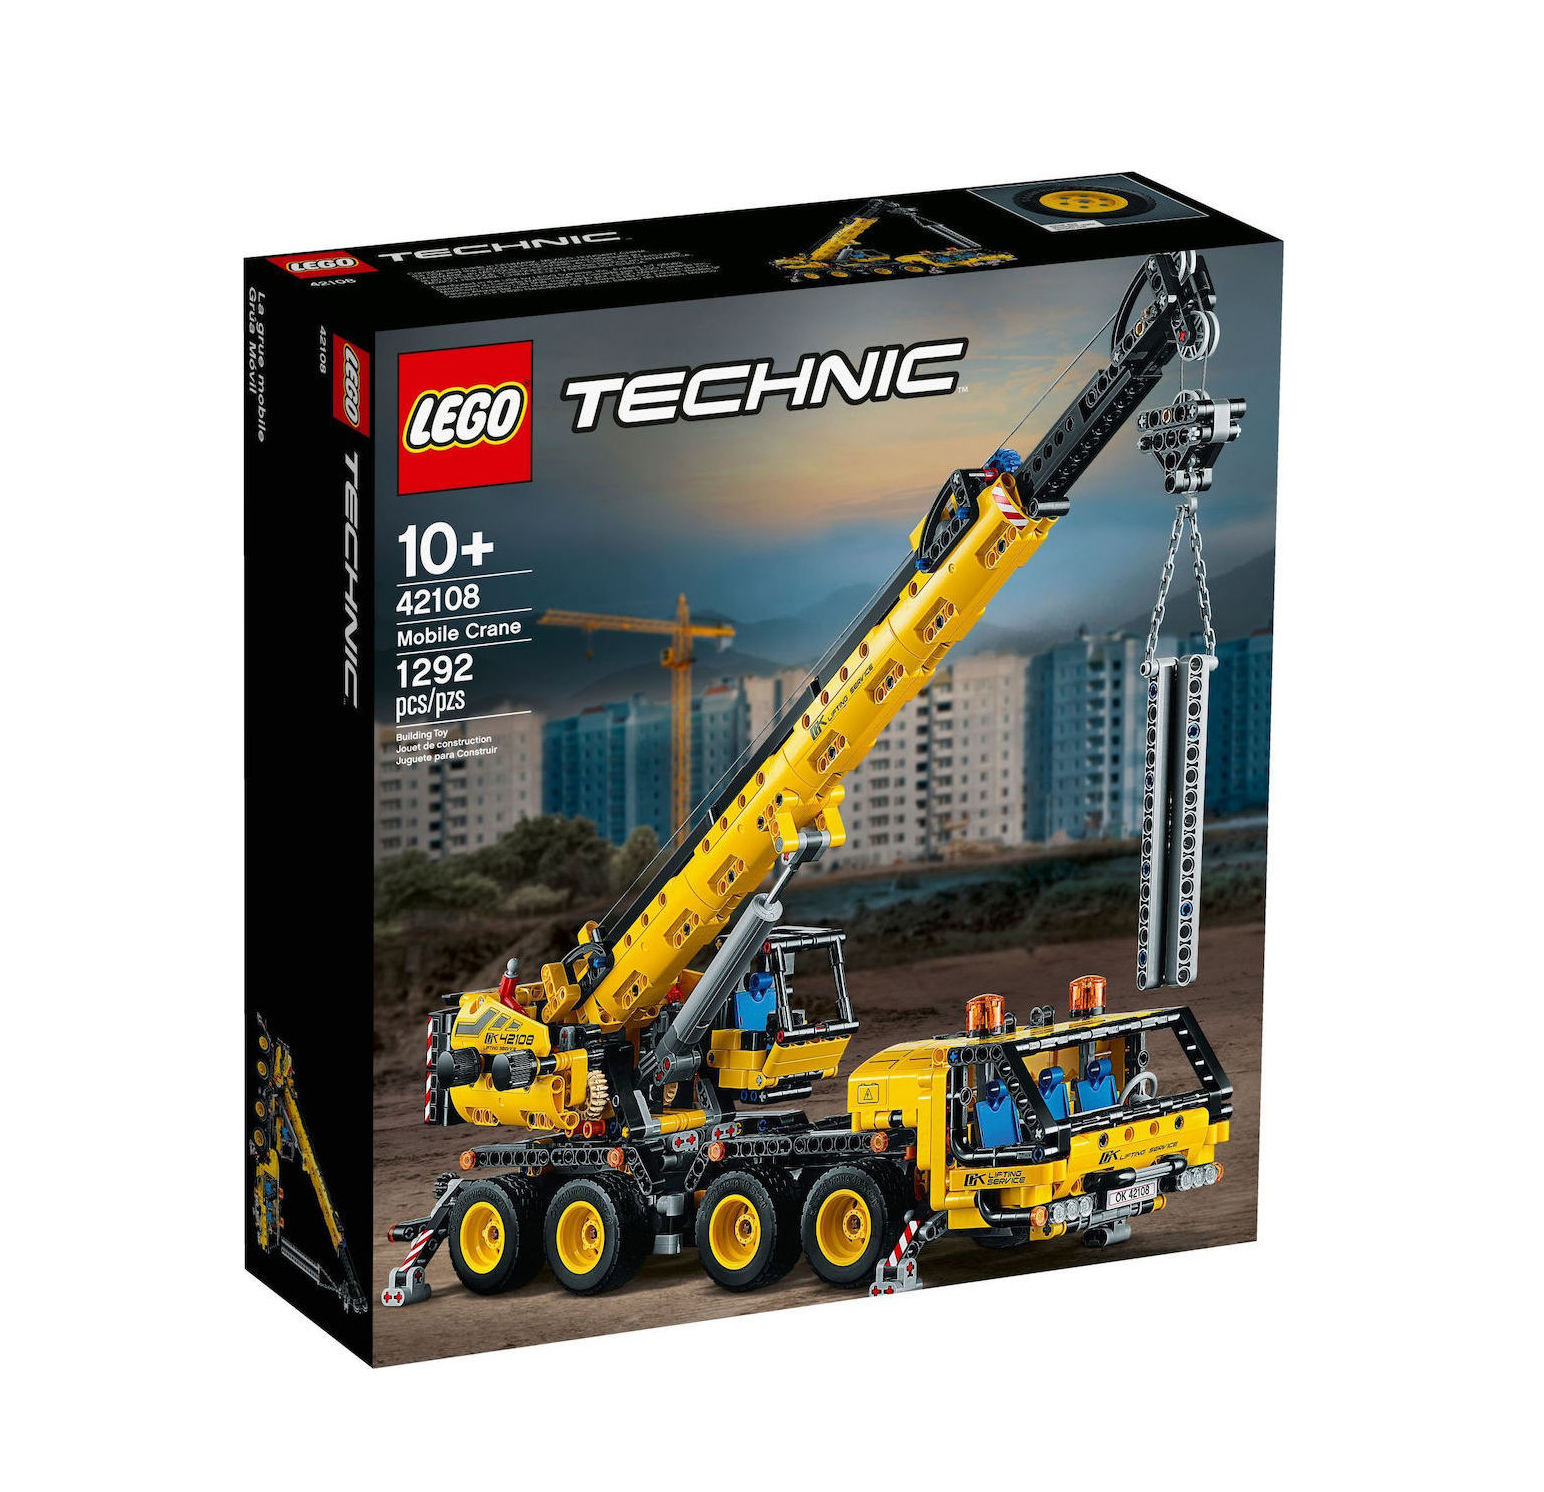 Lego Technic: Mobile Crane 42108